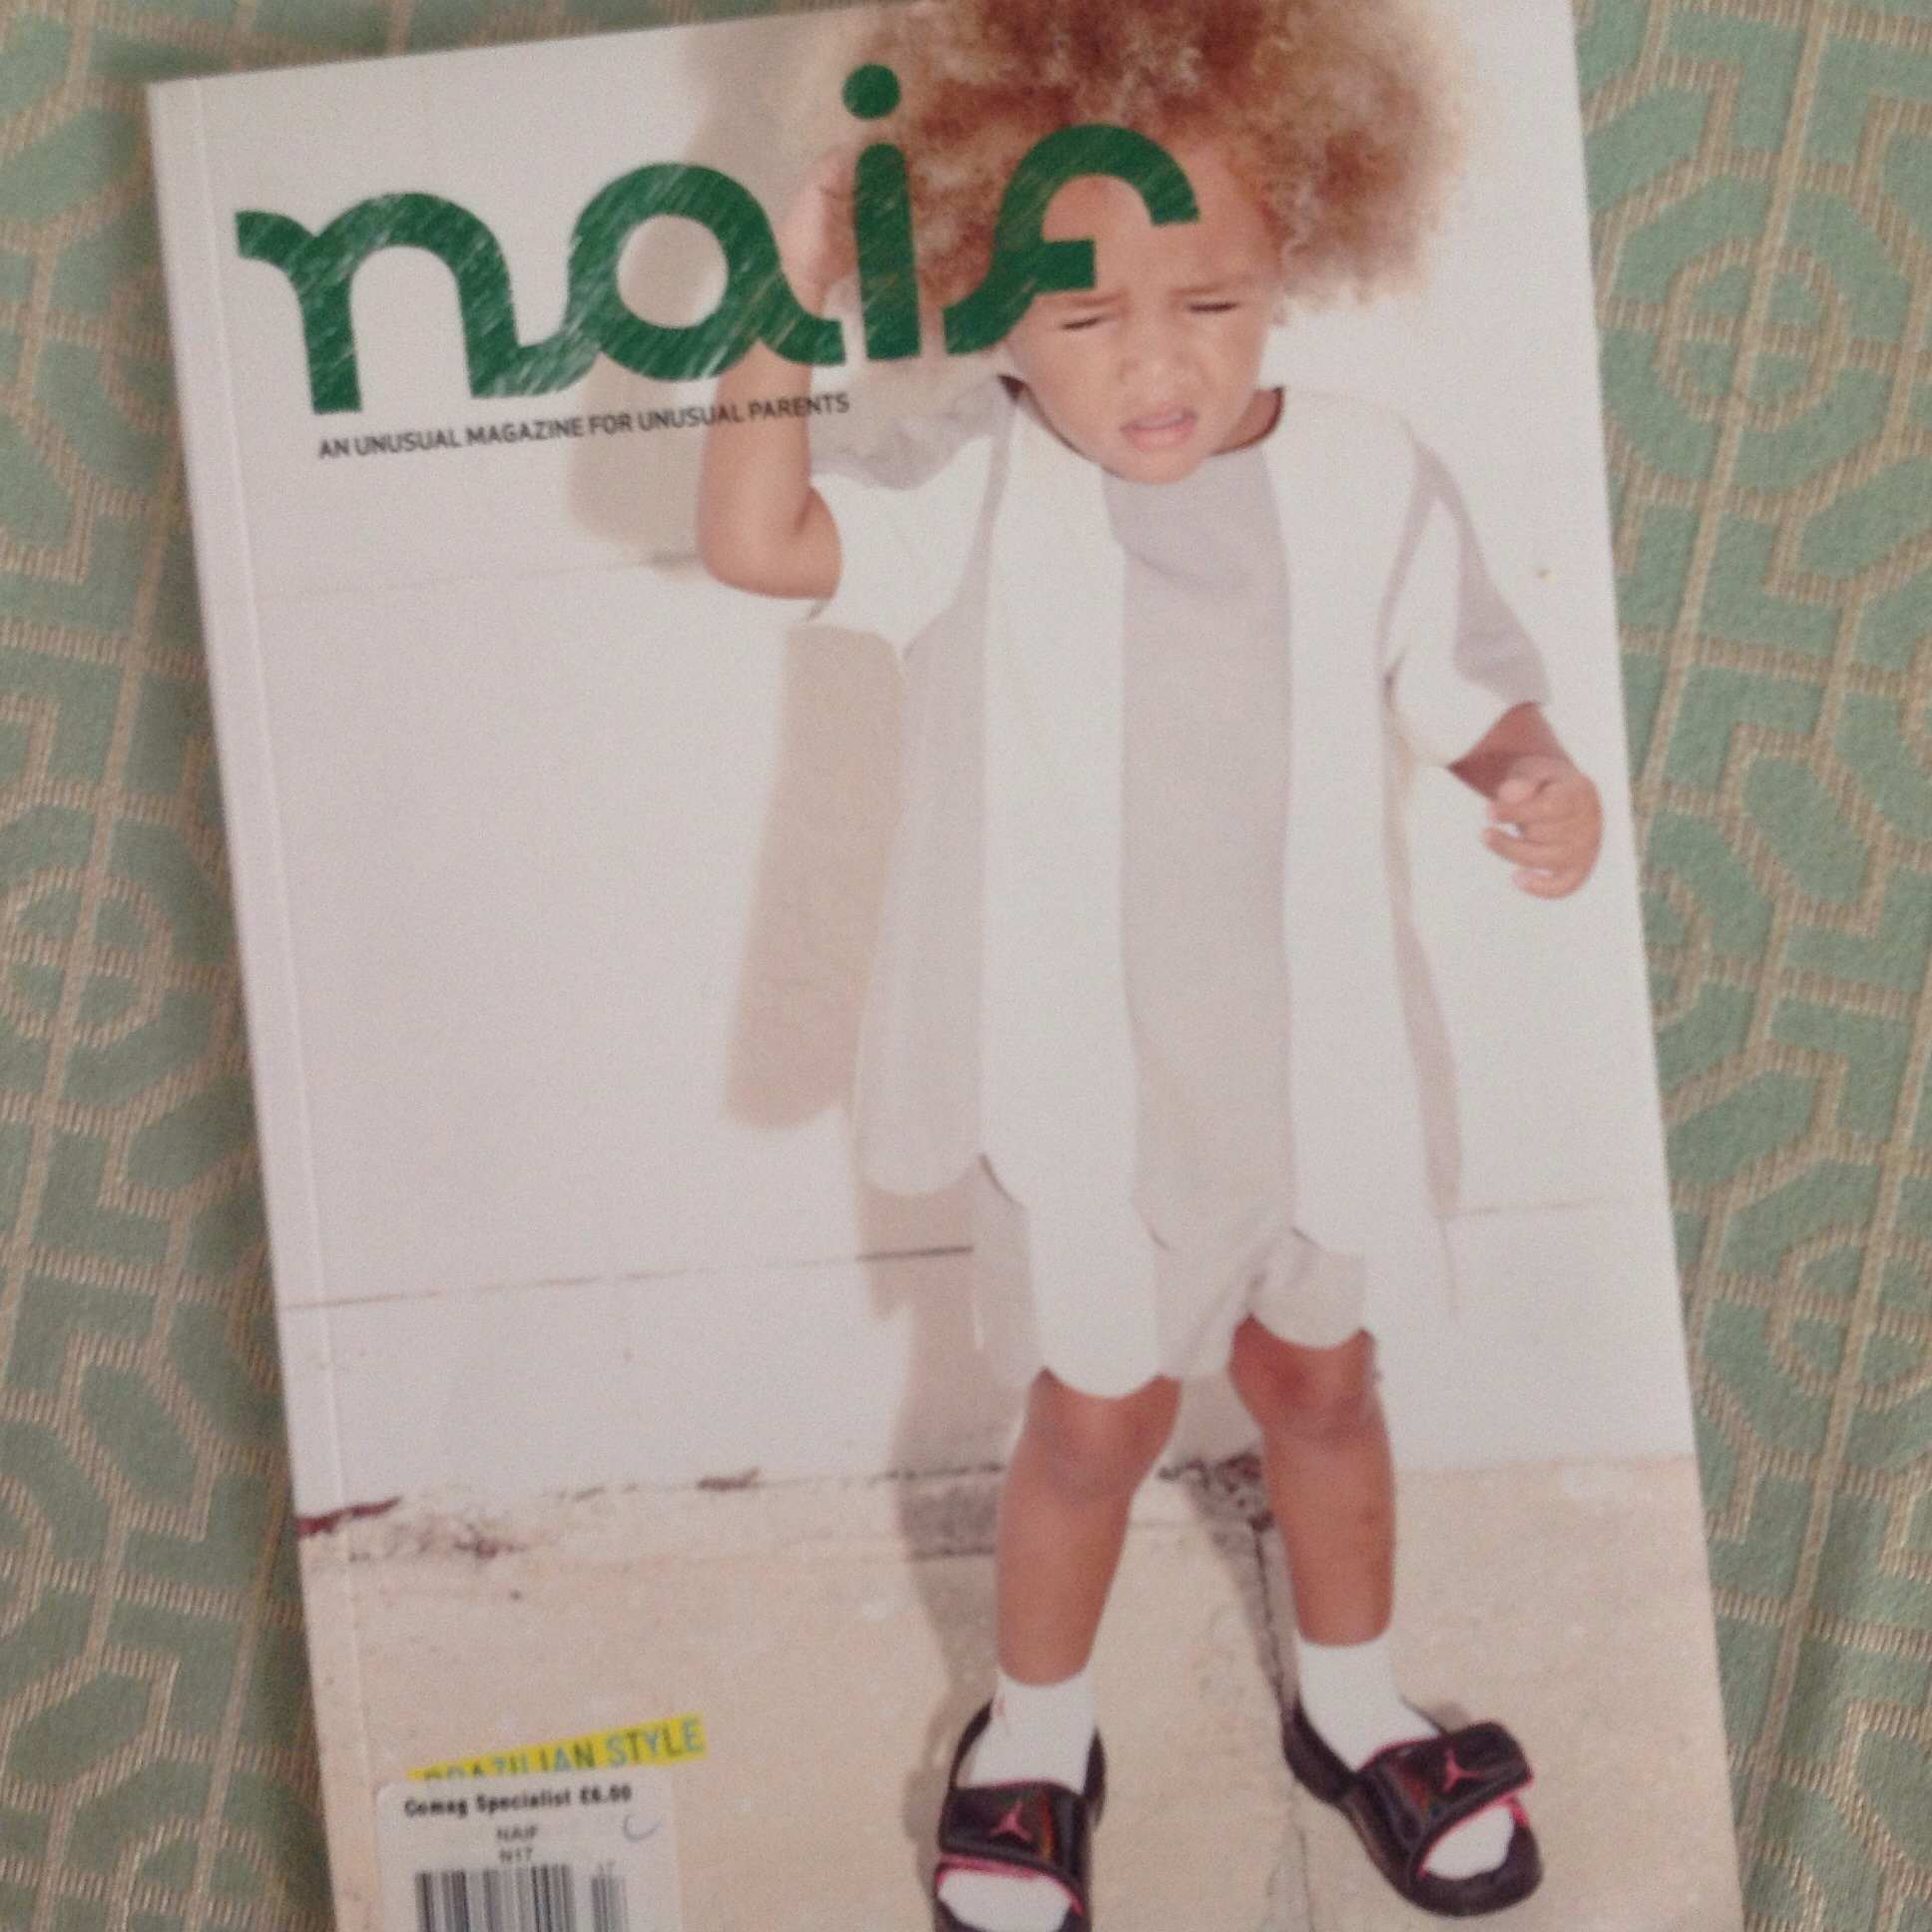 Naif magazine cover styled by Ellie Lines